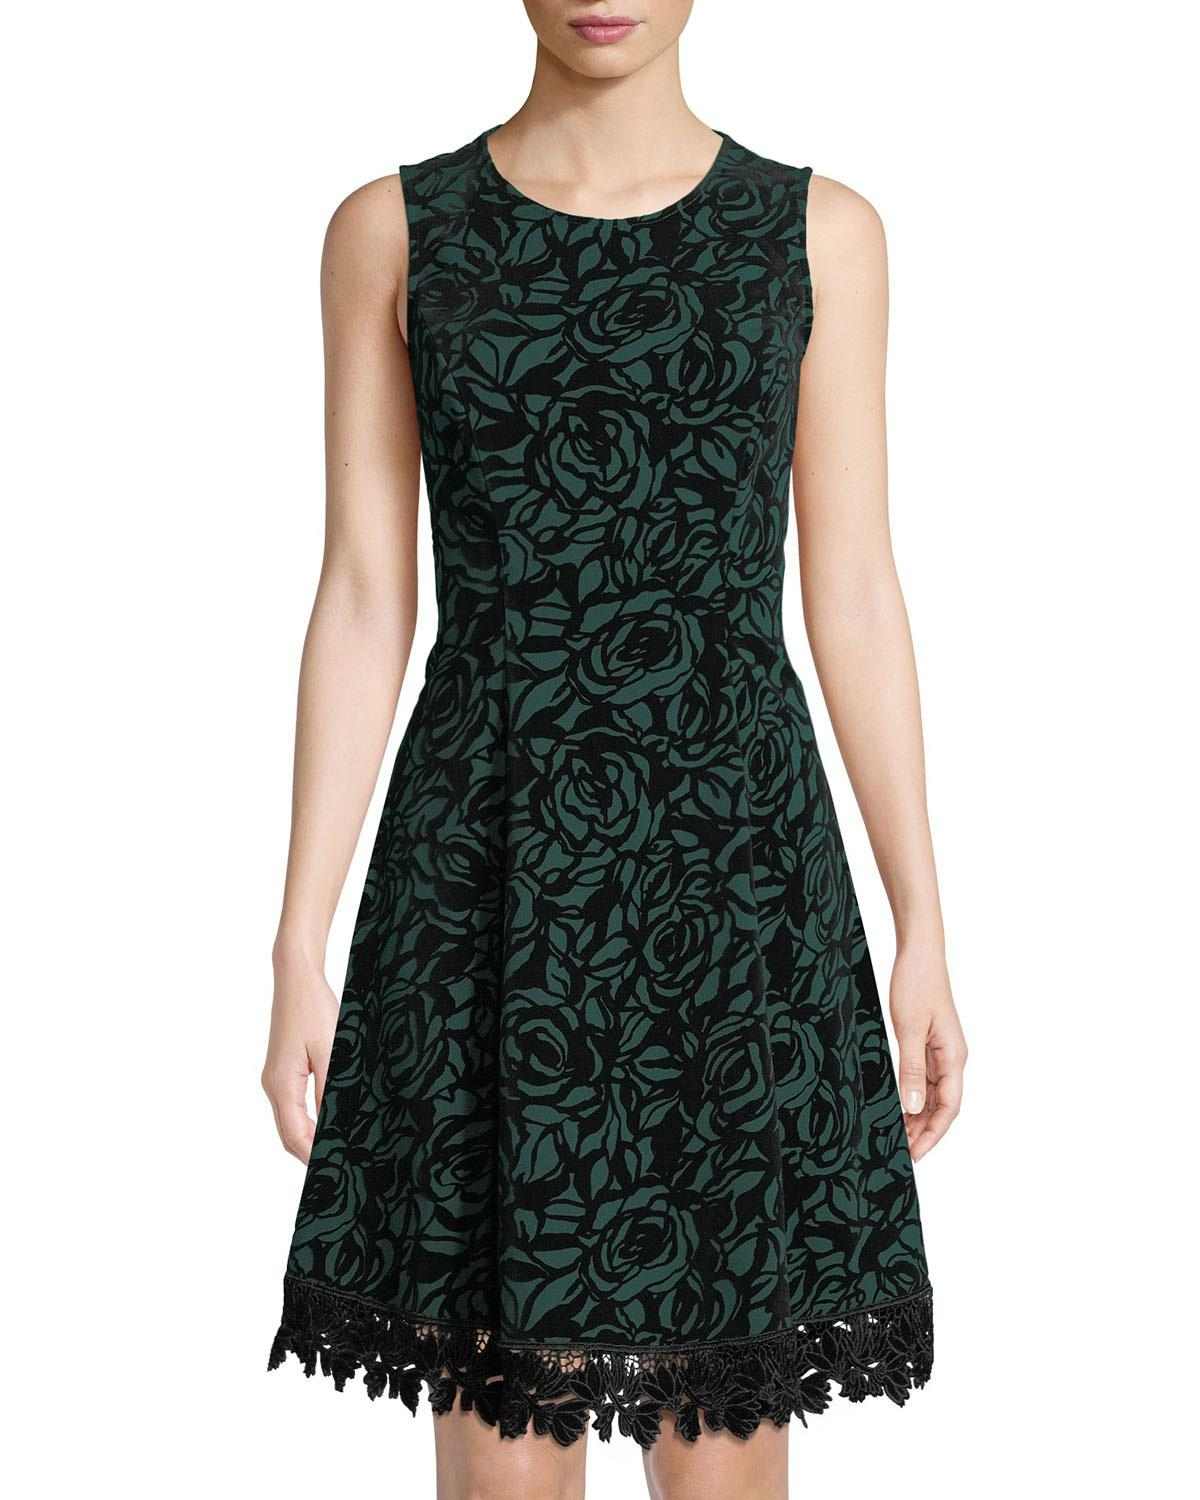 cc80ff7521eb4 Lyst - Donna Ricco Floral Lace-trimmed Flocked Scuba Dress in Green ...